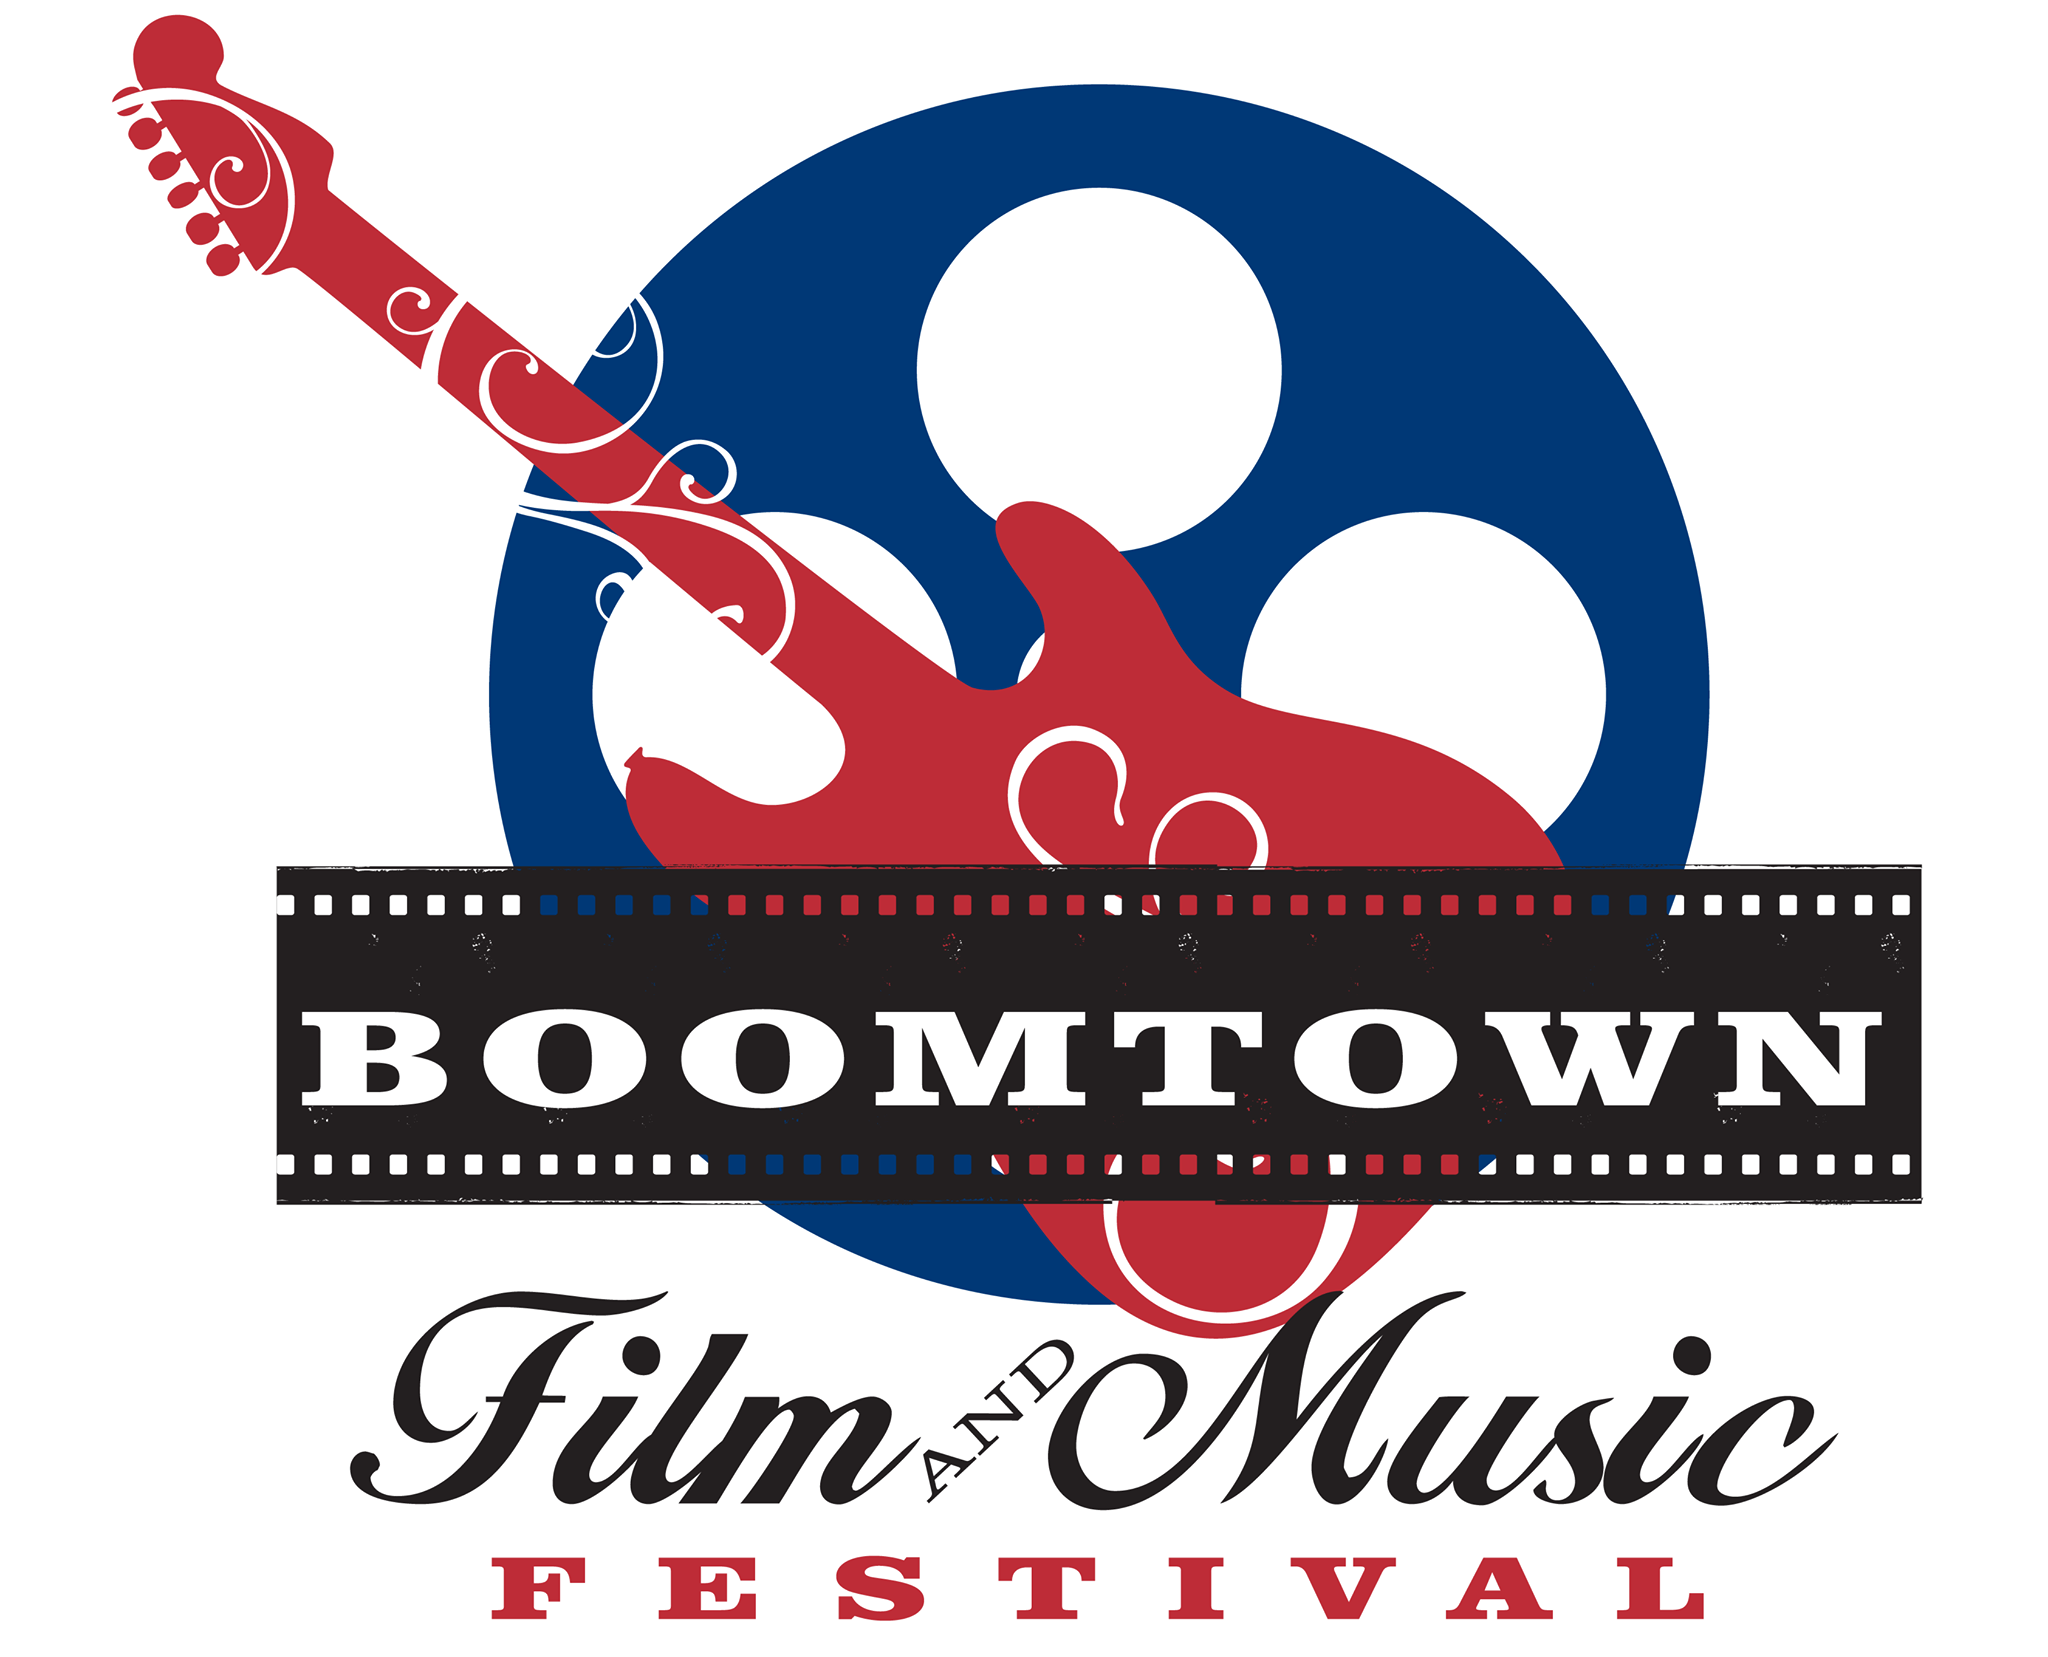 Boomtown Film and Music Festival https://promocionmusical.es/publicidad-en-facebook-de-tus-conciertos-sin-usar-eventos/: